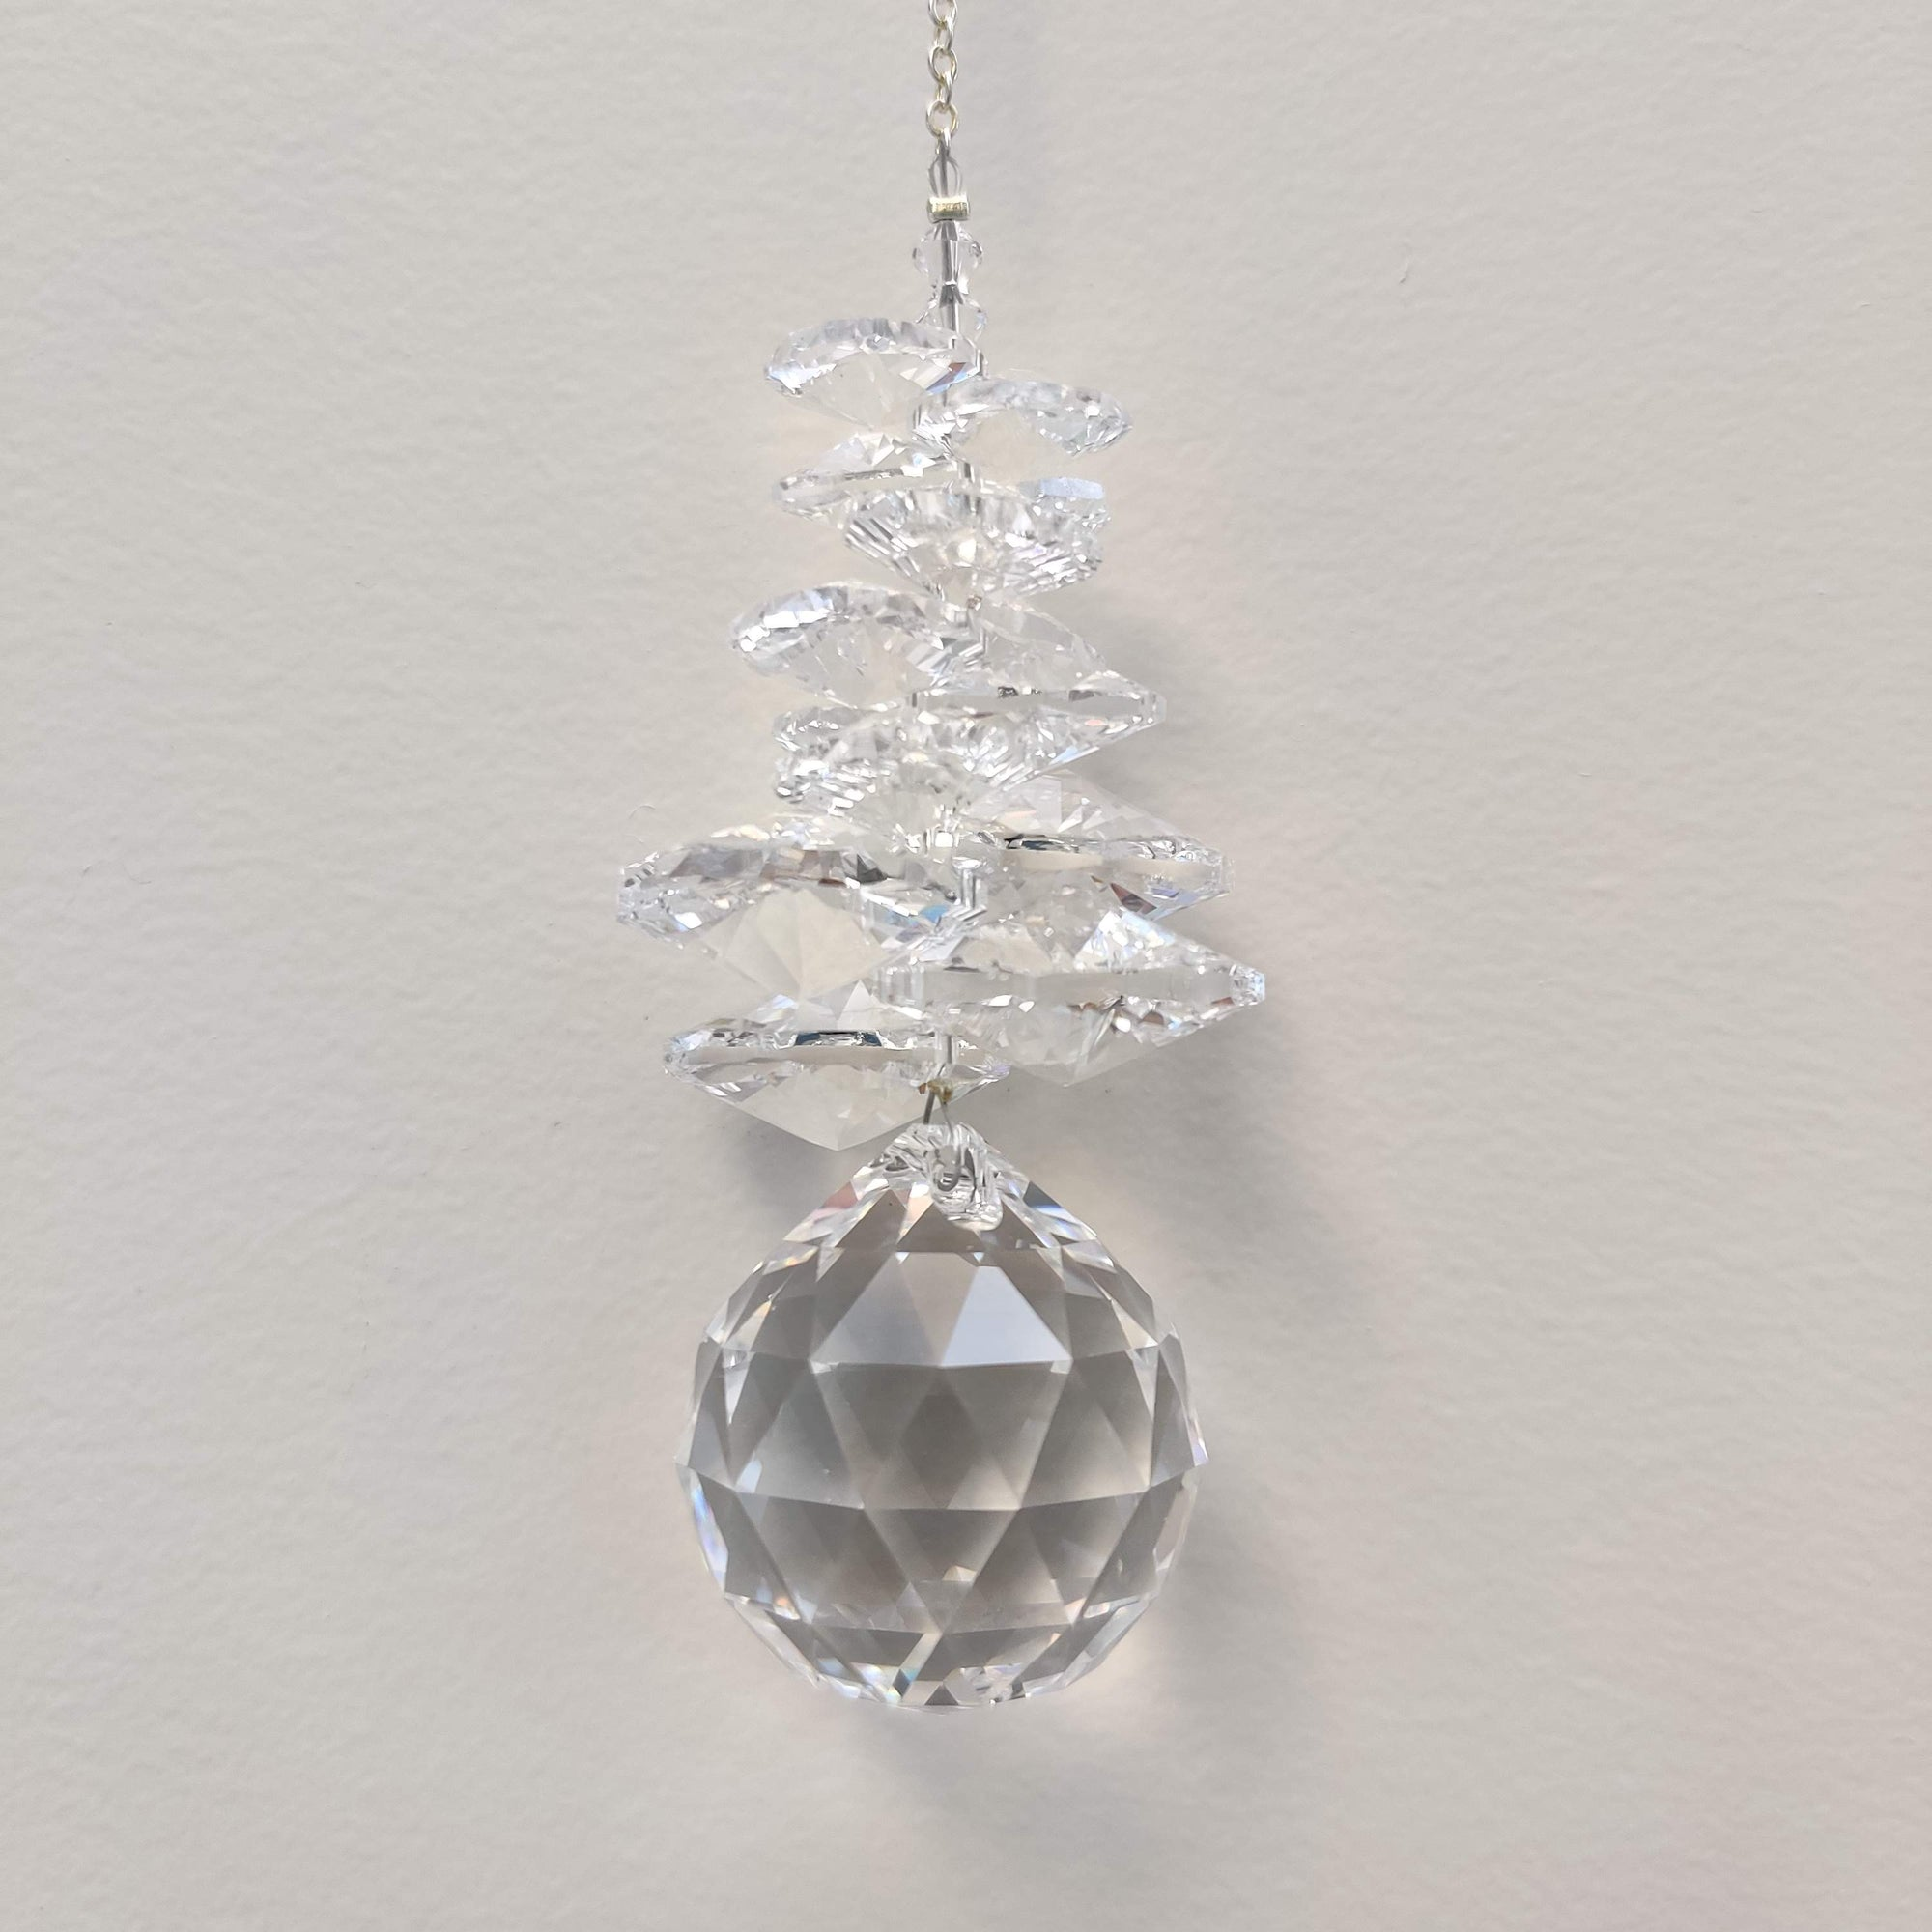 Clarus Ice Sphere Swarovski Crystal - Pure - Rivendell Shop